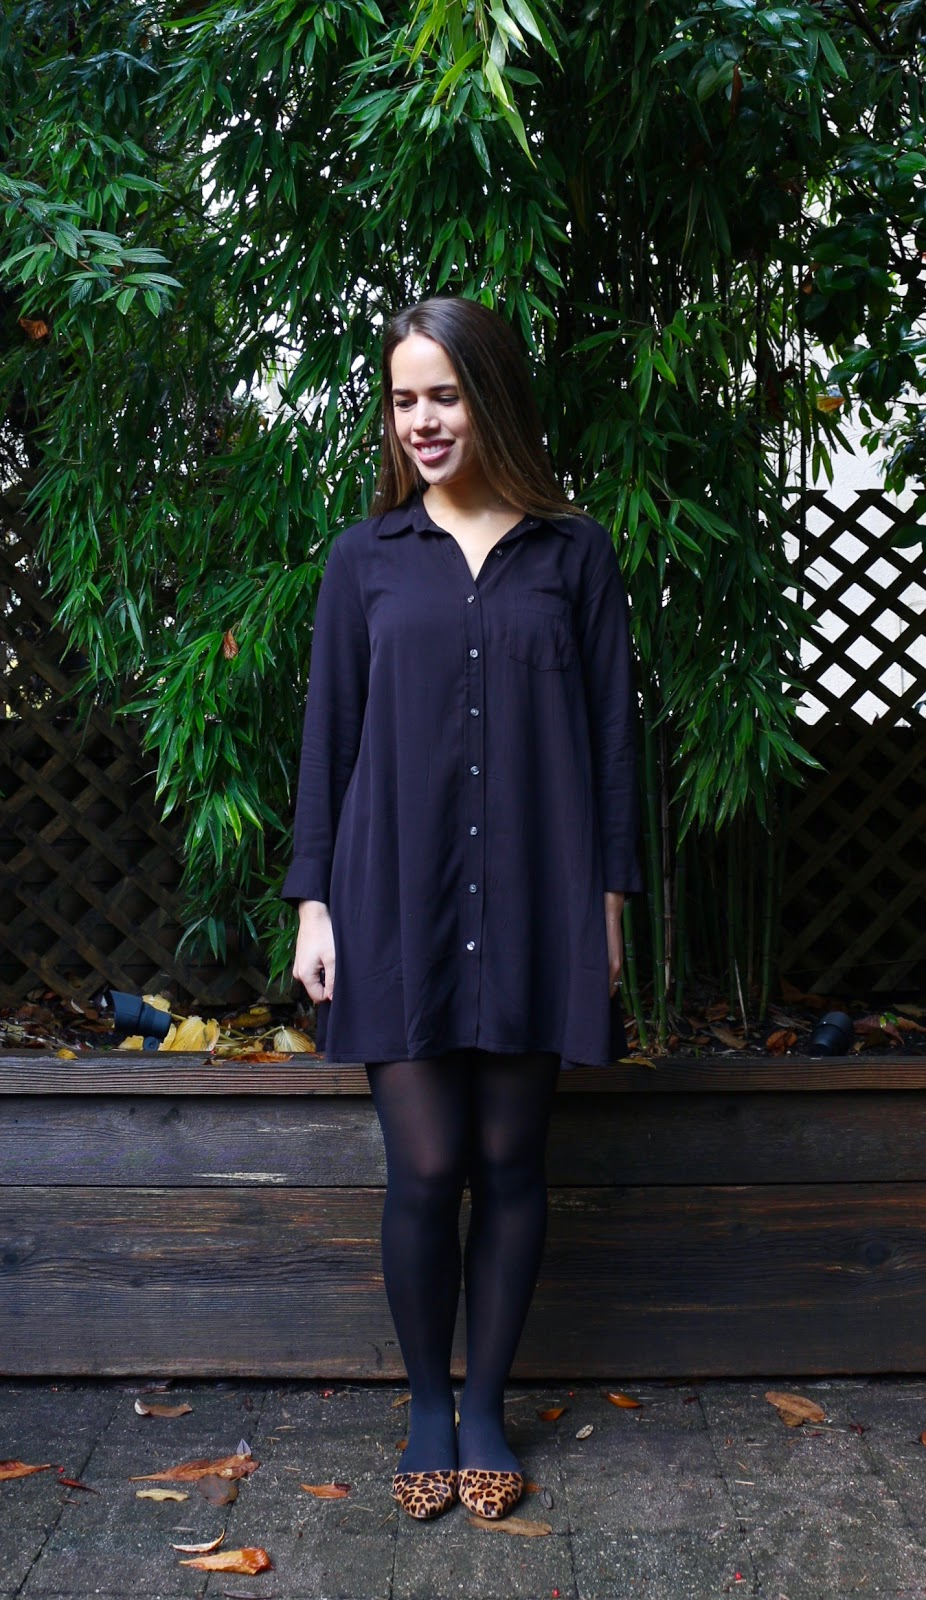 Jules in Flats - Swing Shirt Dress (Business Casual Fall Workwear on a Budget)